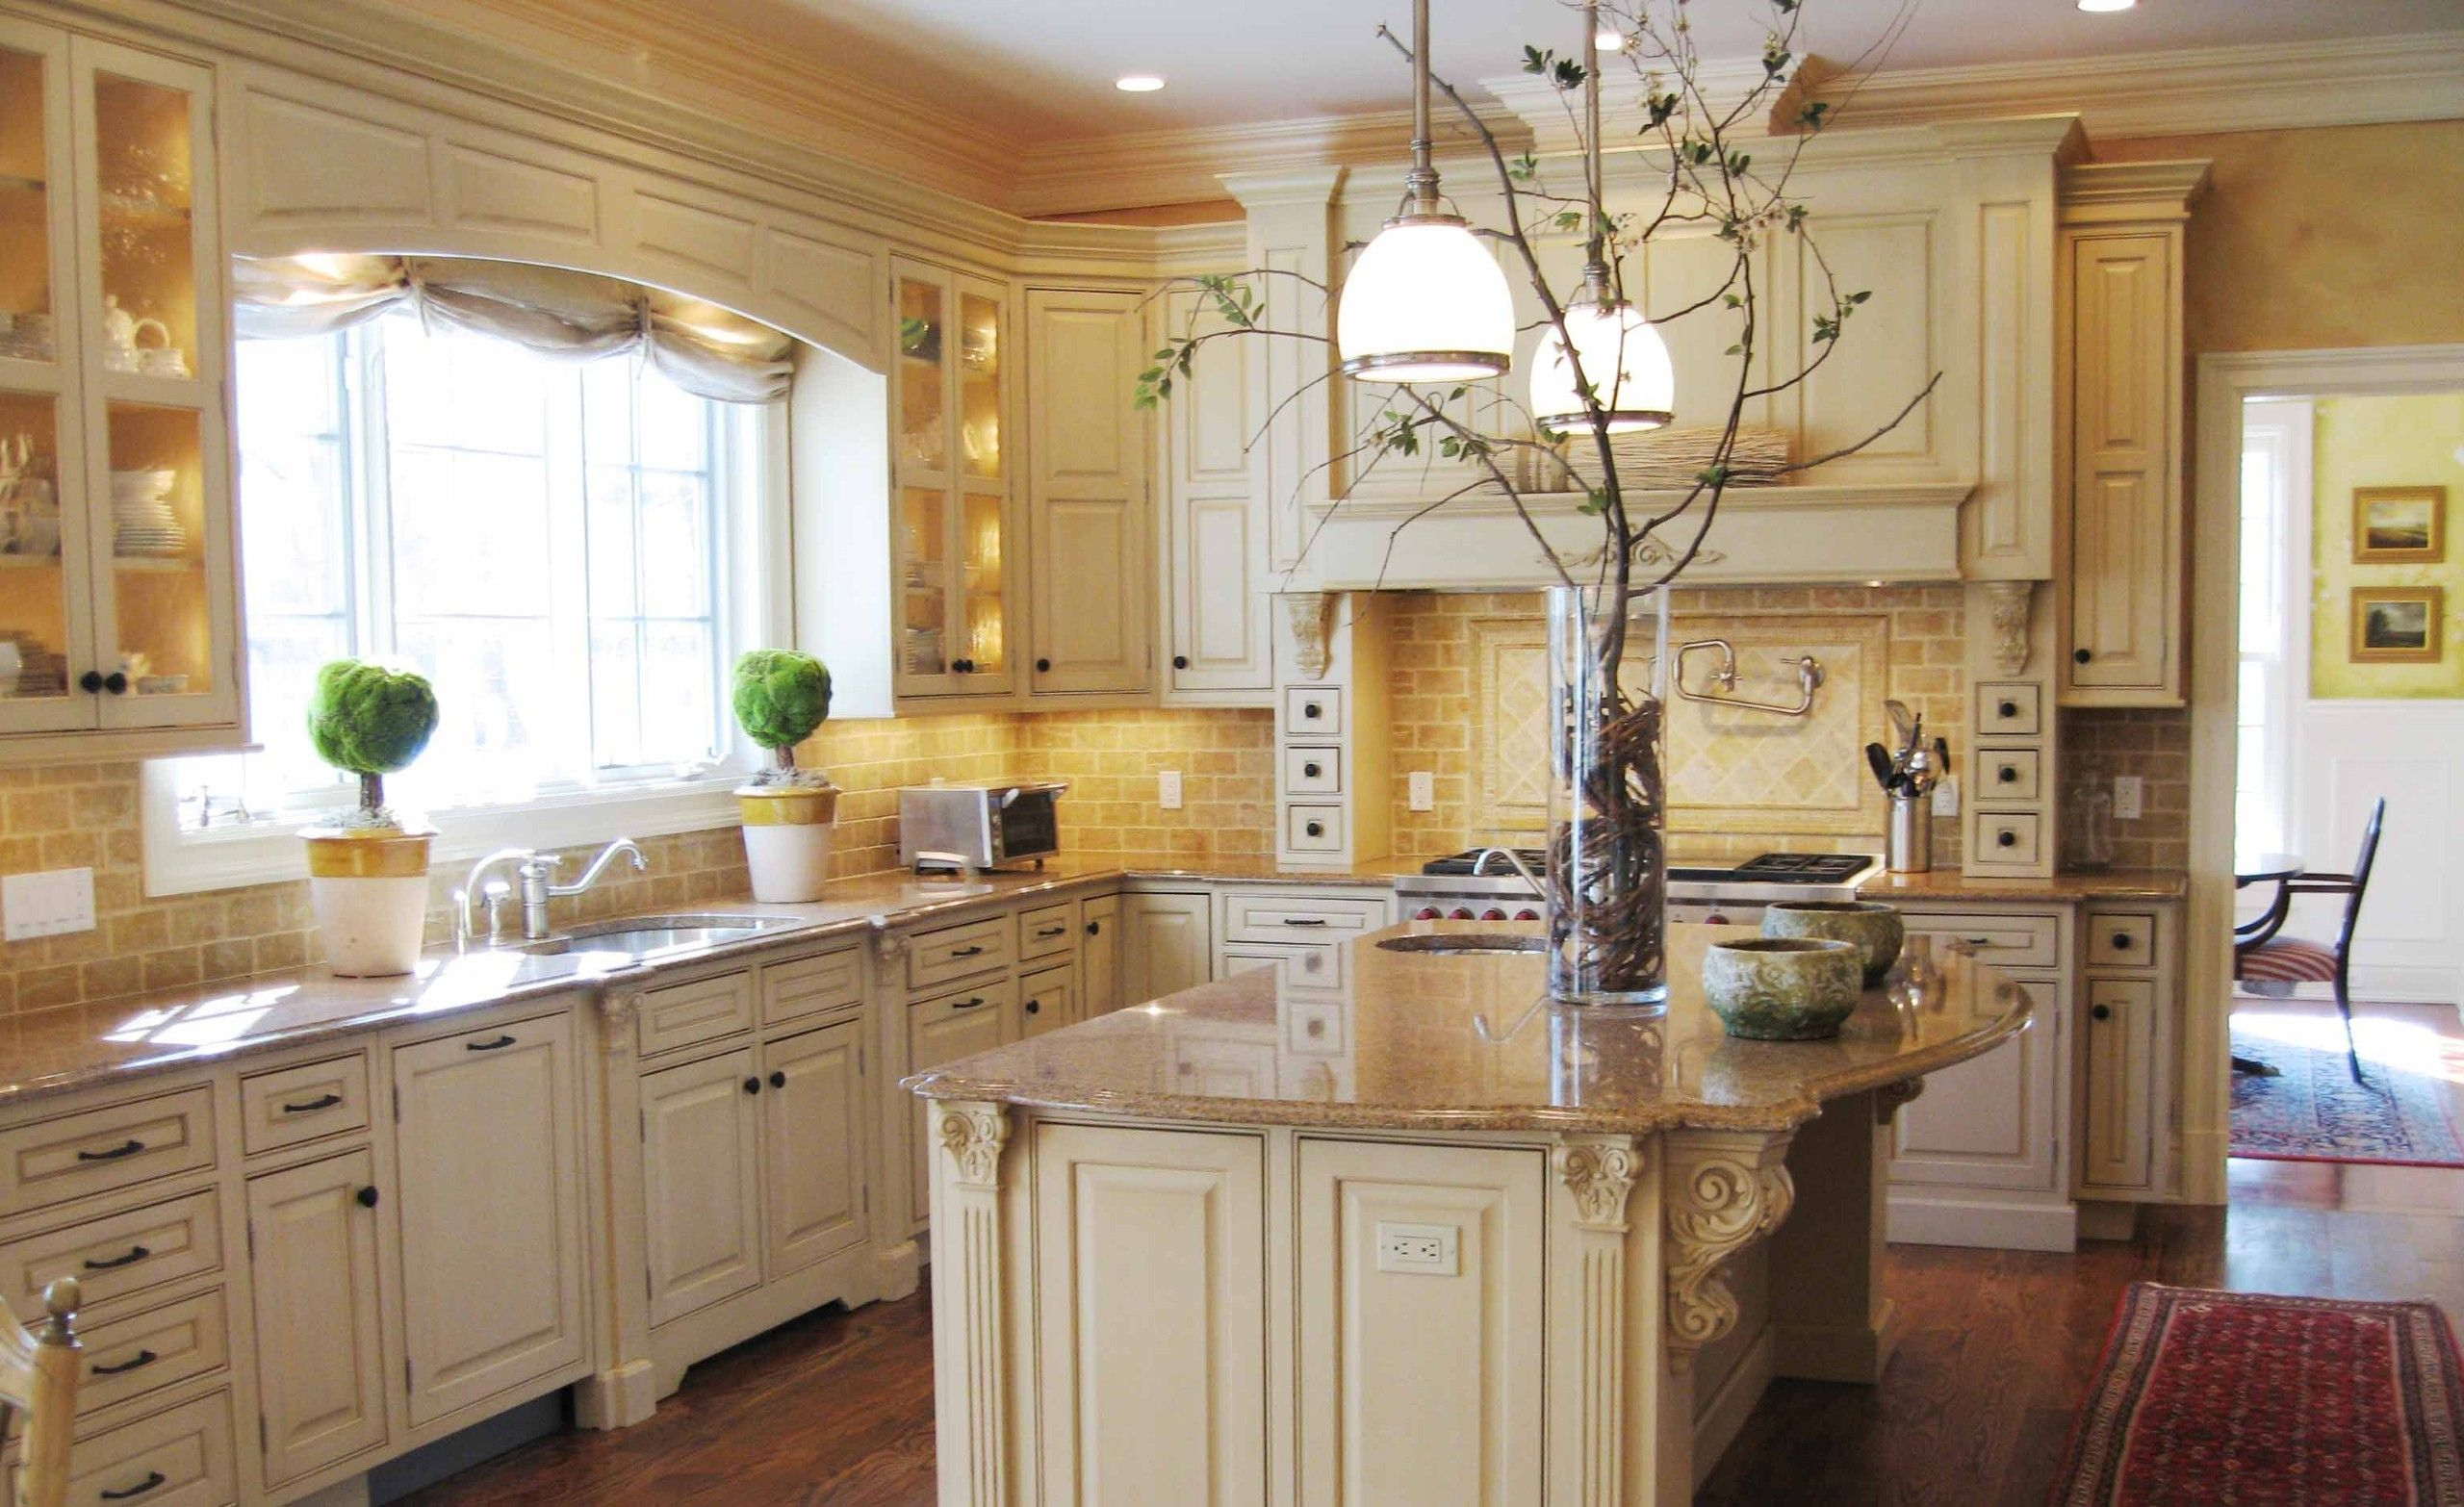 Terrific french country kitchen decor with broken white cabinets and island combined with gold - French country kitchens ...